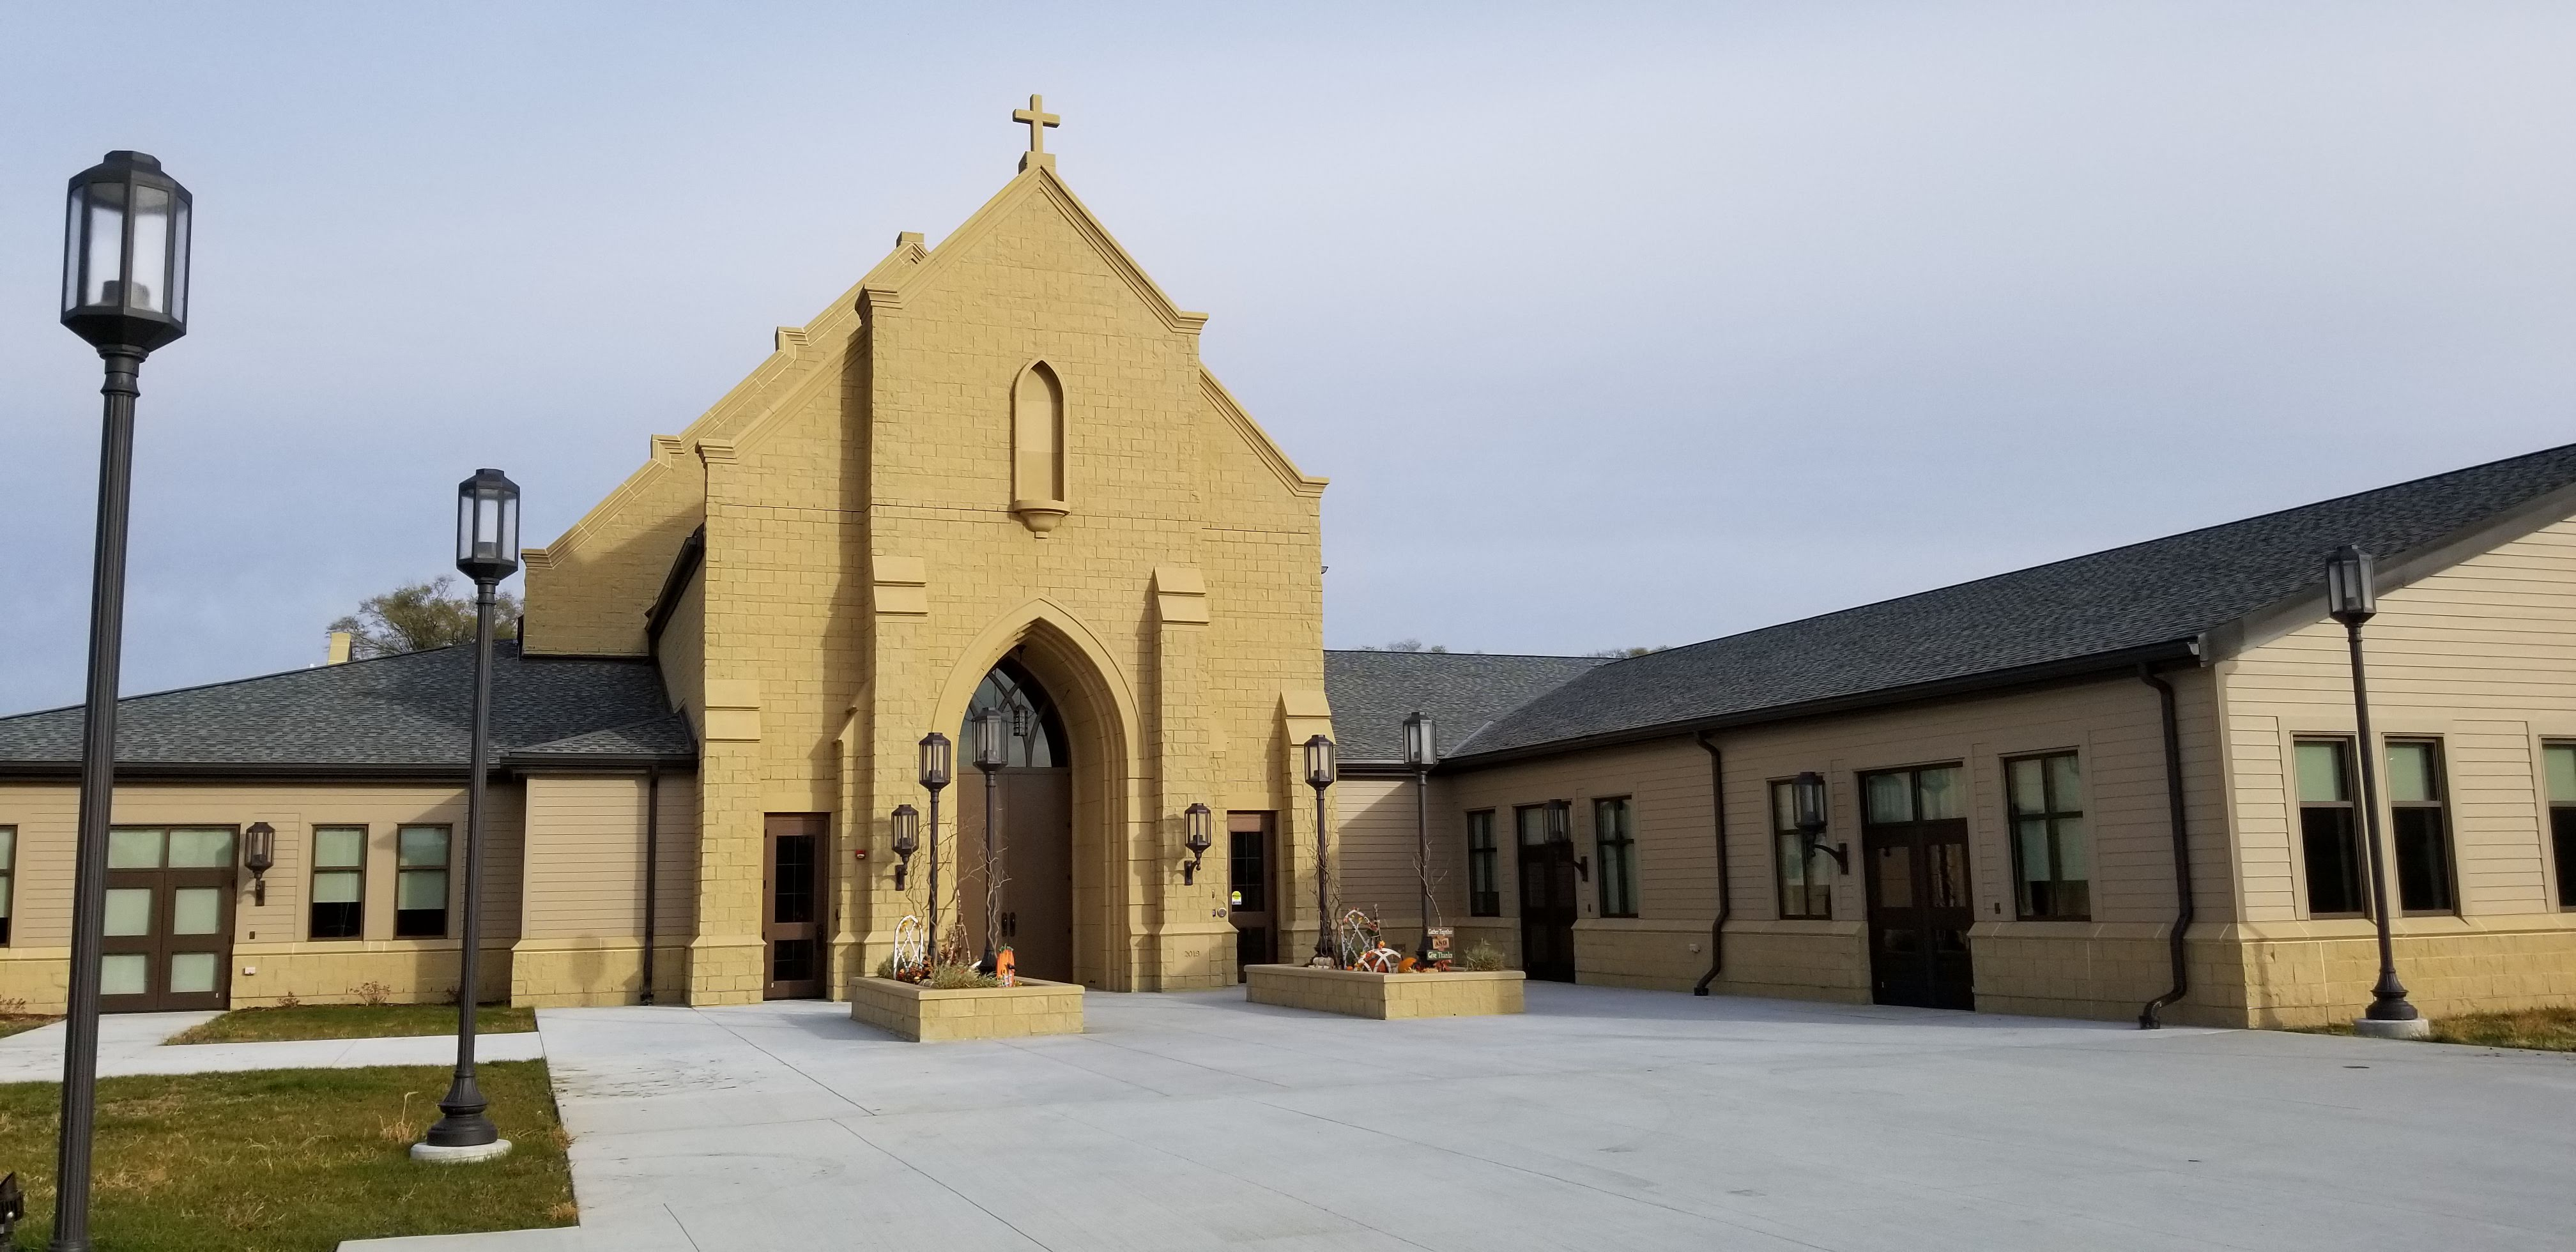 St. Patrick's Catholic Church Council Bluffs